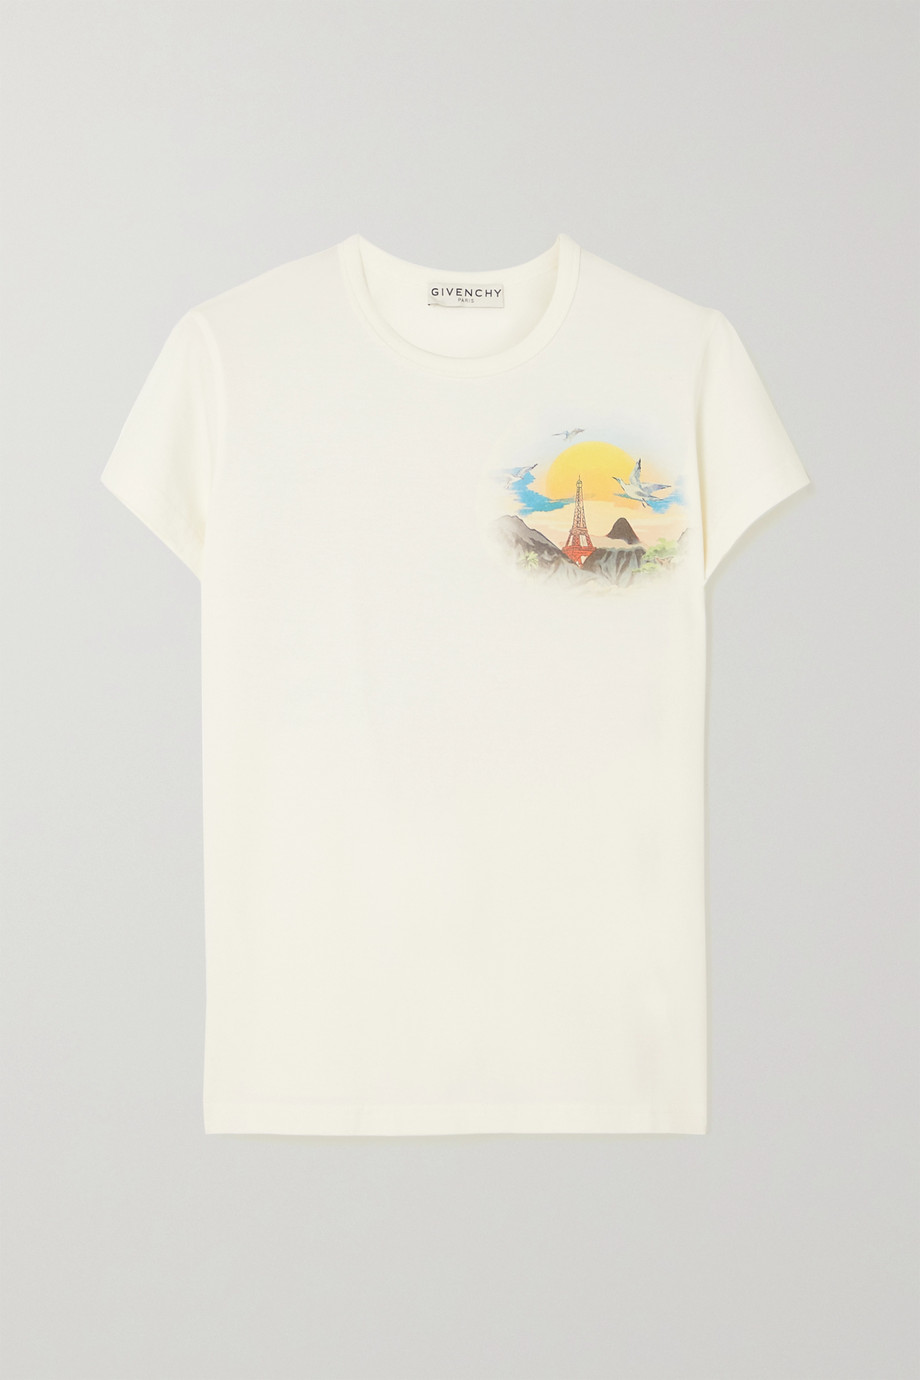 Givenchy Island printed cotton-jersey T-shirt